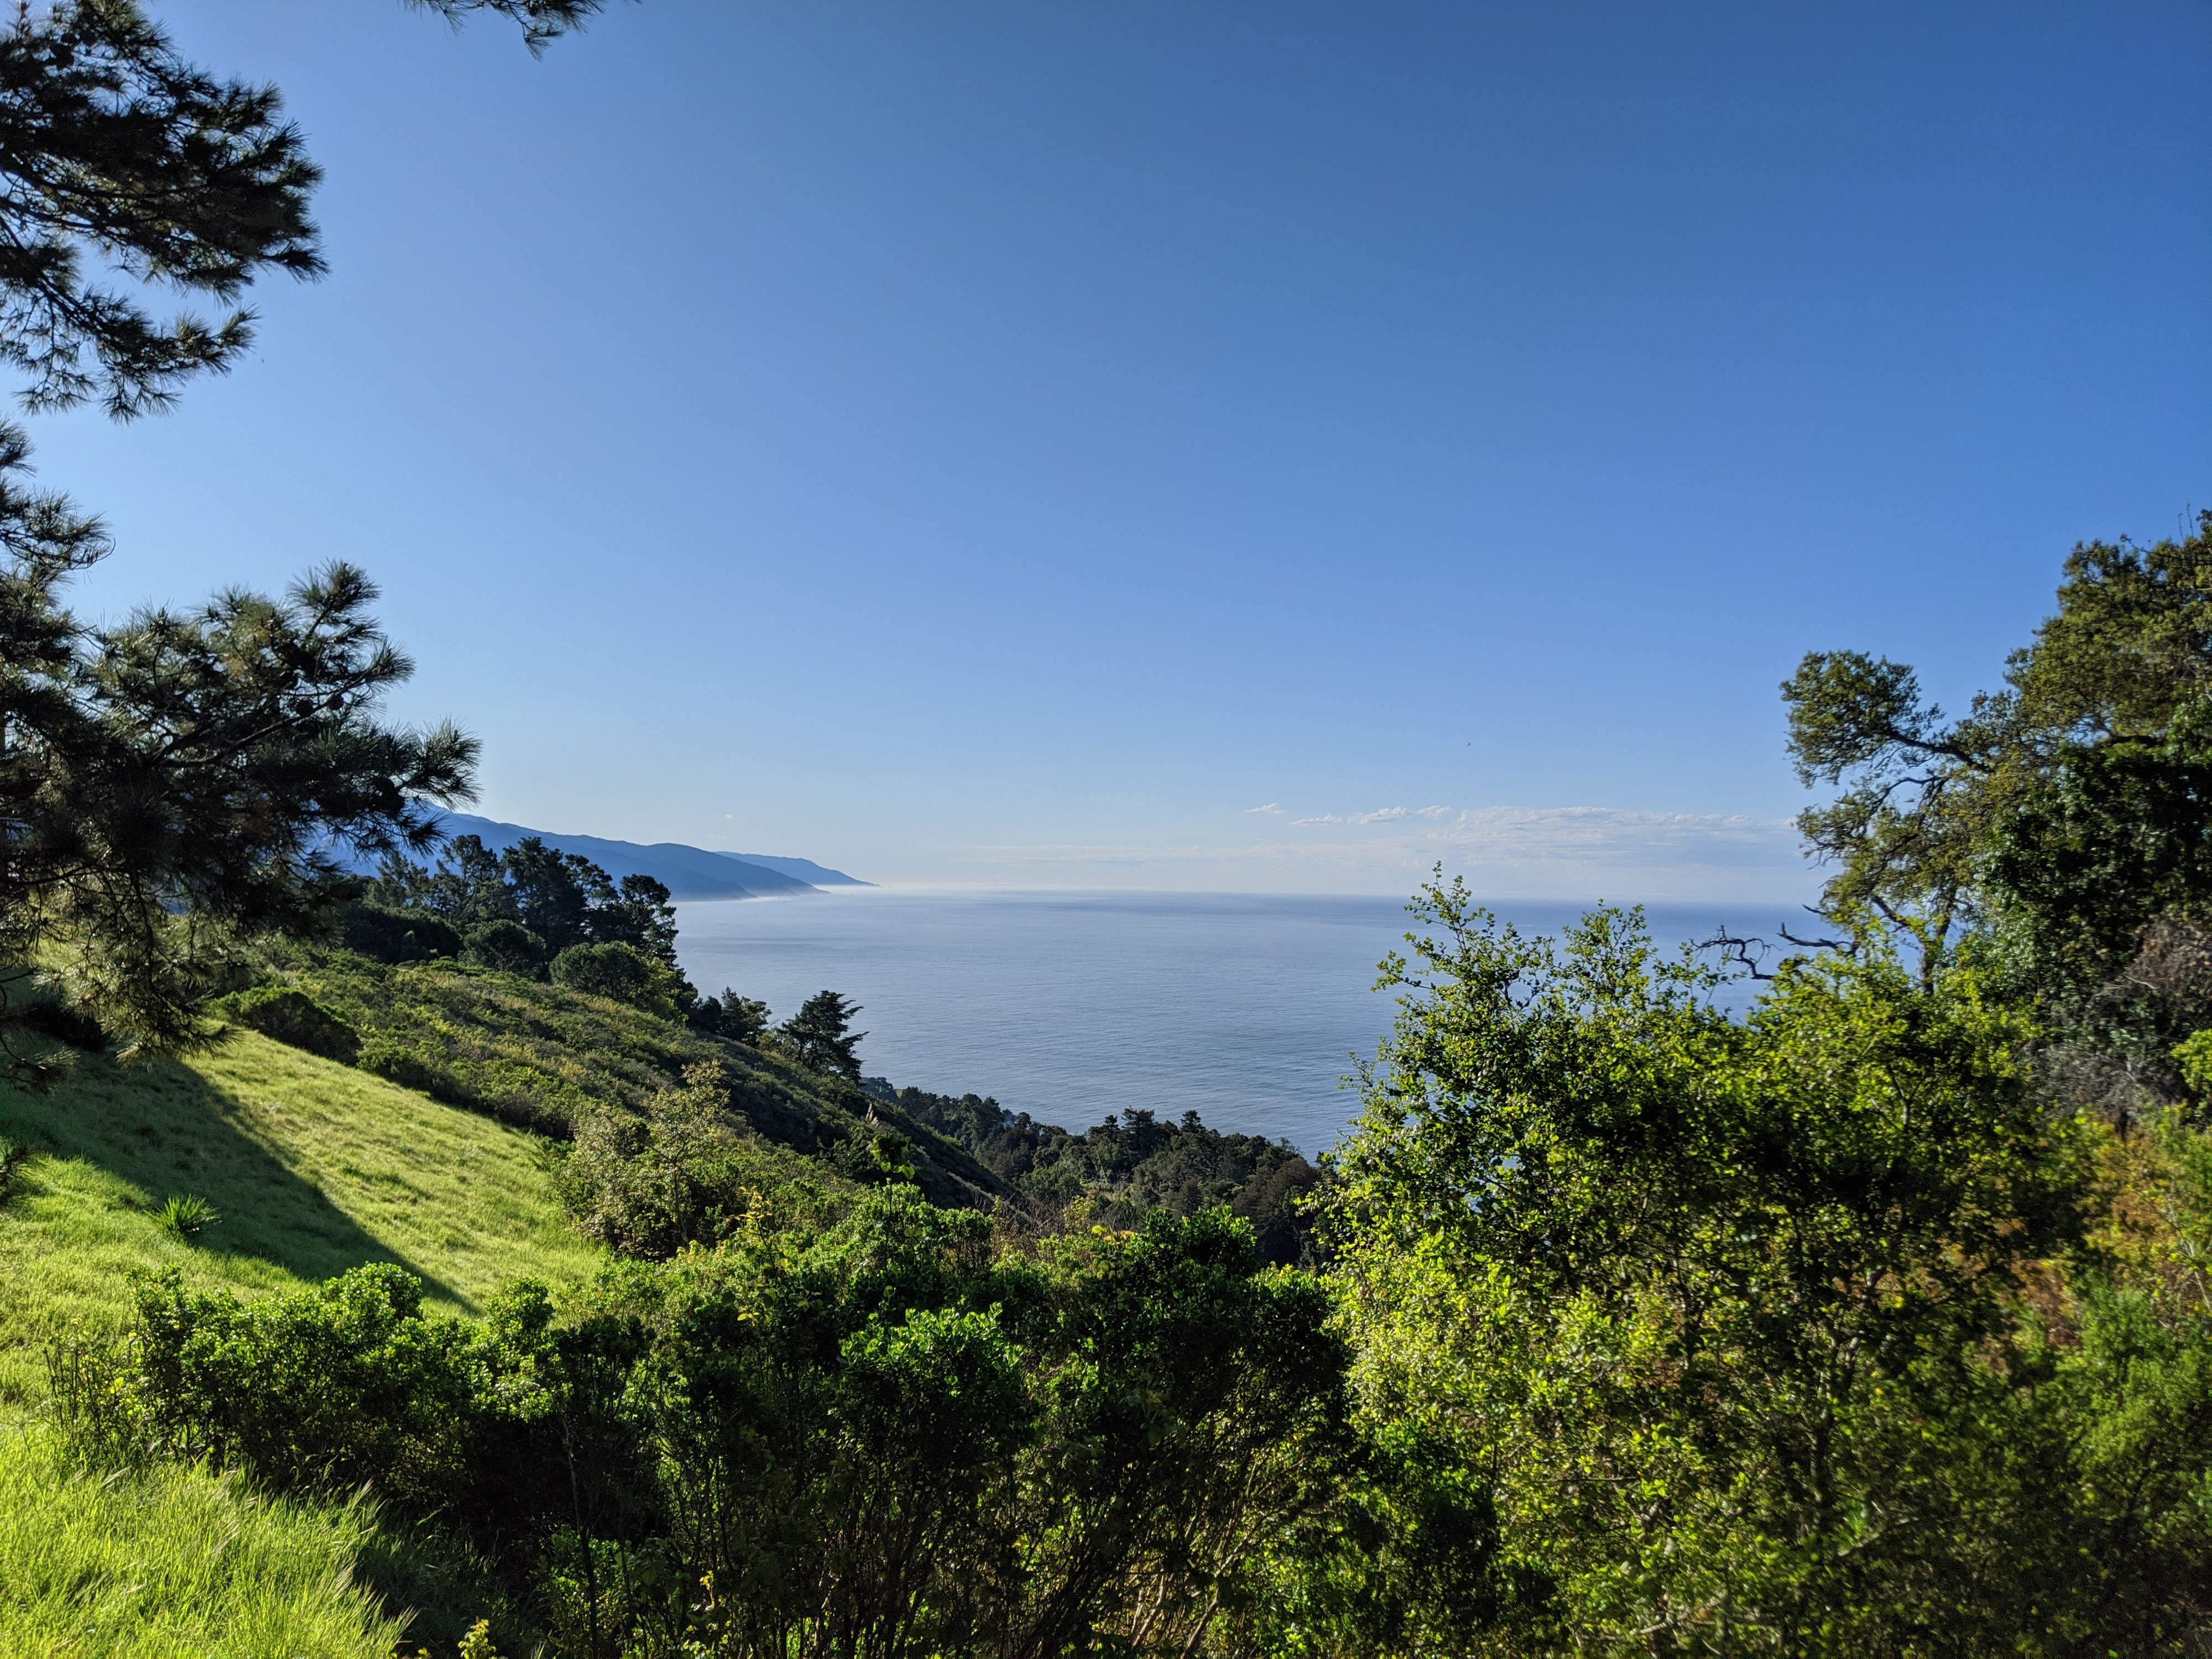 A photo of Big Sur, California, overlooking the Pacific Ocean and a mountain range in the background and a green hillside with trees in the foreground.